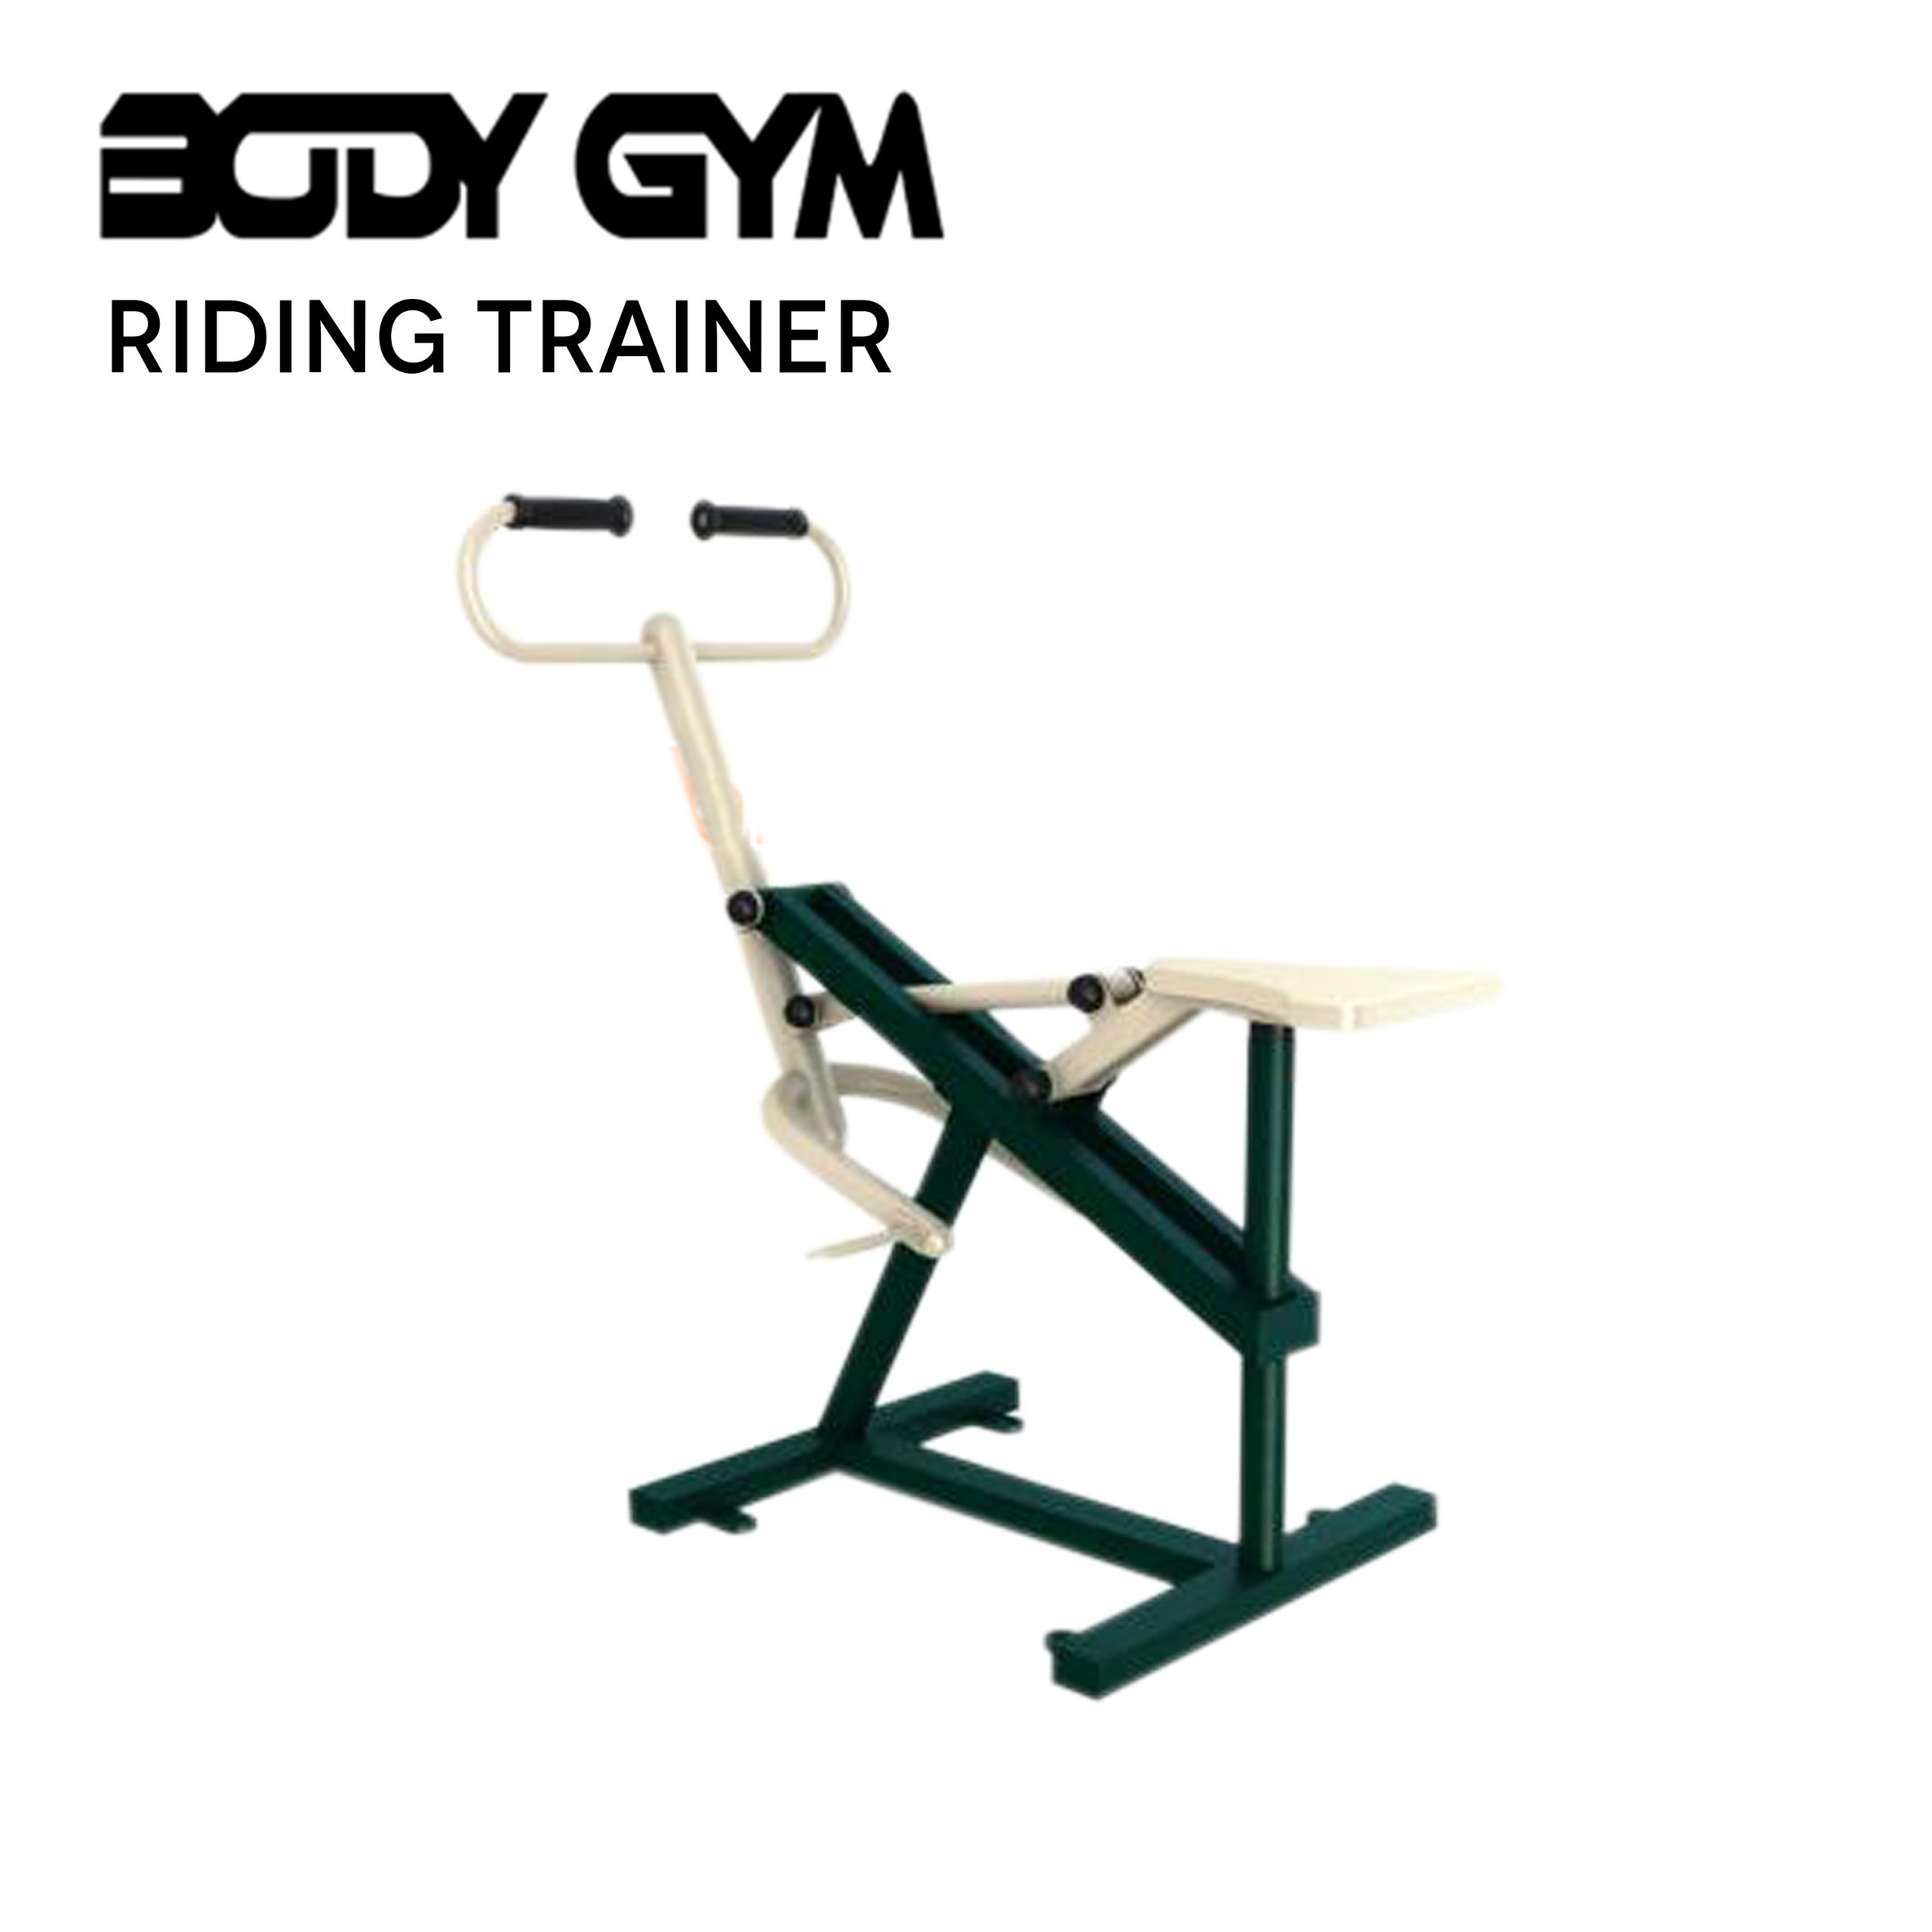 RIDING TRAINER NO WM scaled - Riding Trainer - Alat Fitness Outdoor - AFO-56